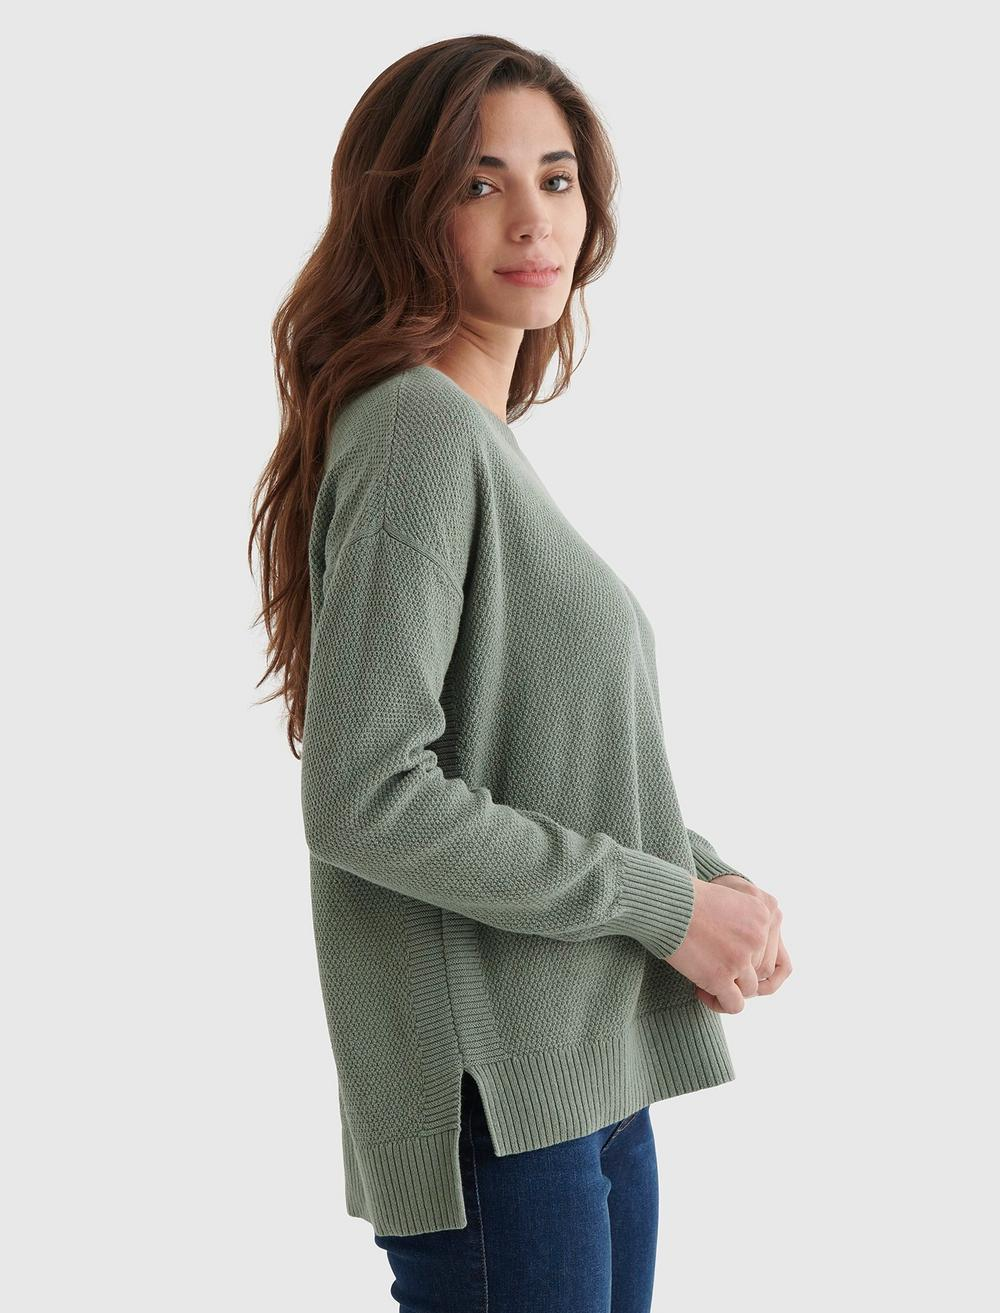 TEXTURED KNIT SWEATER, image 4